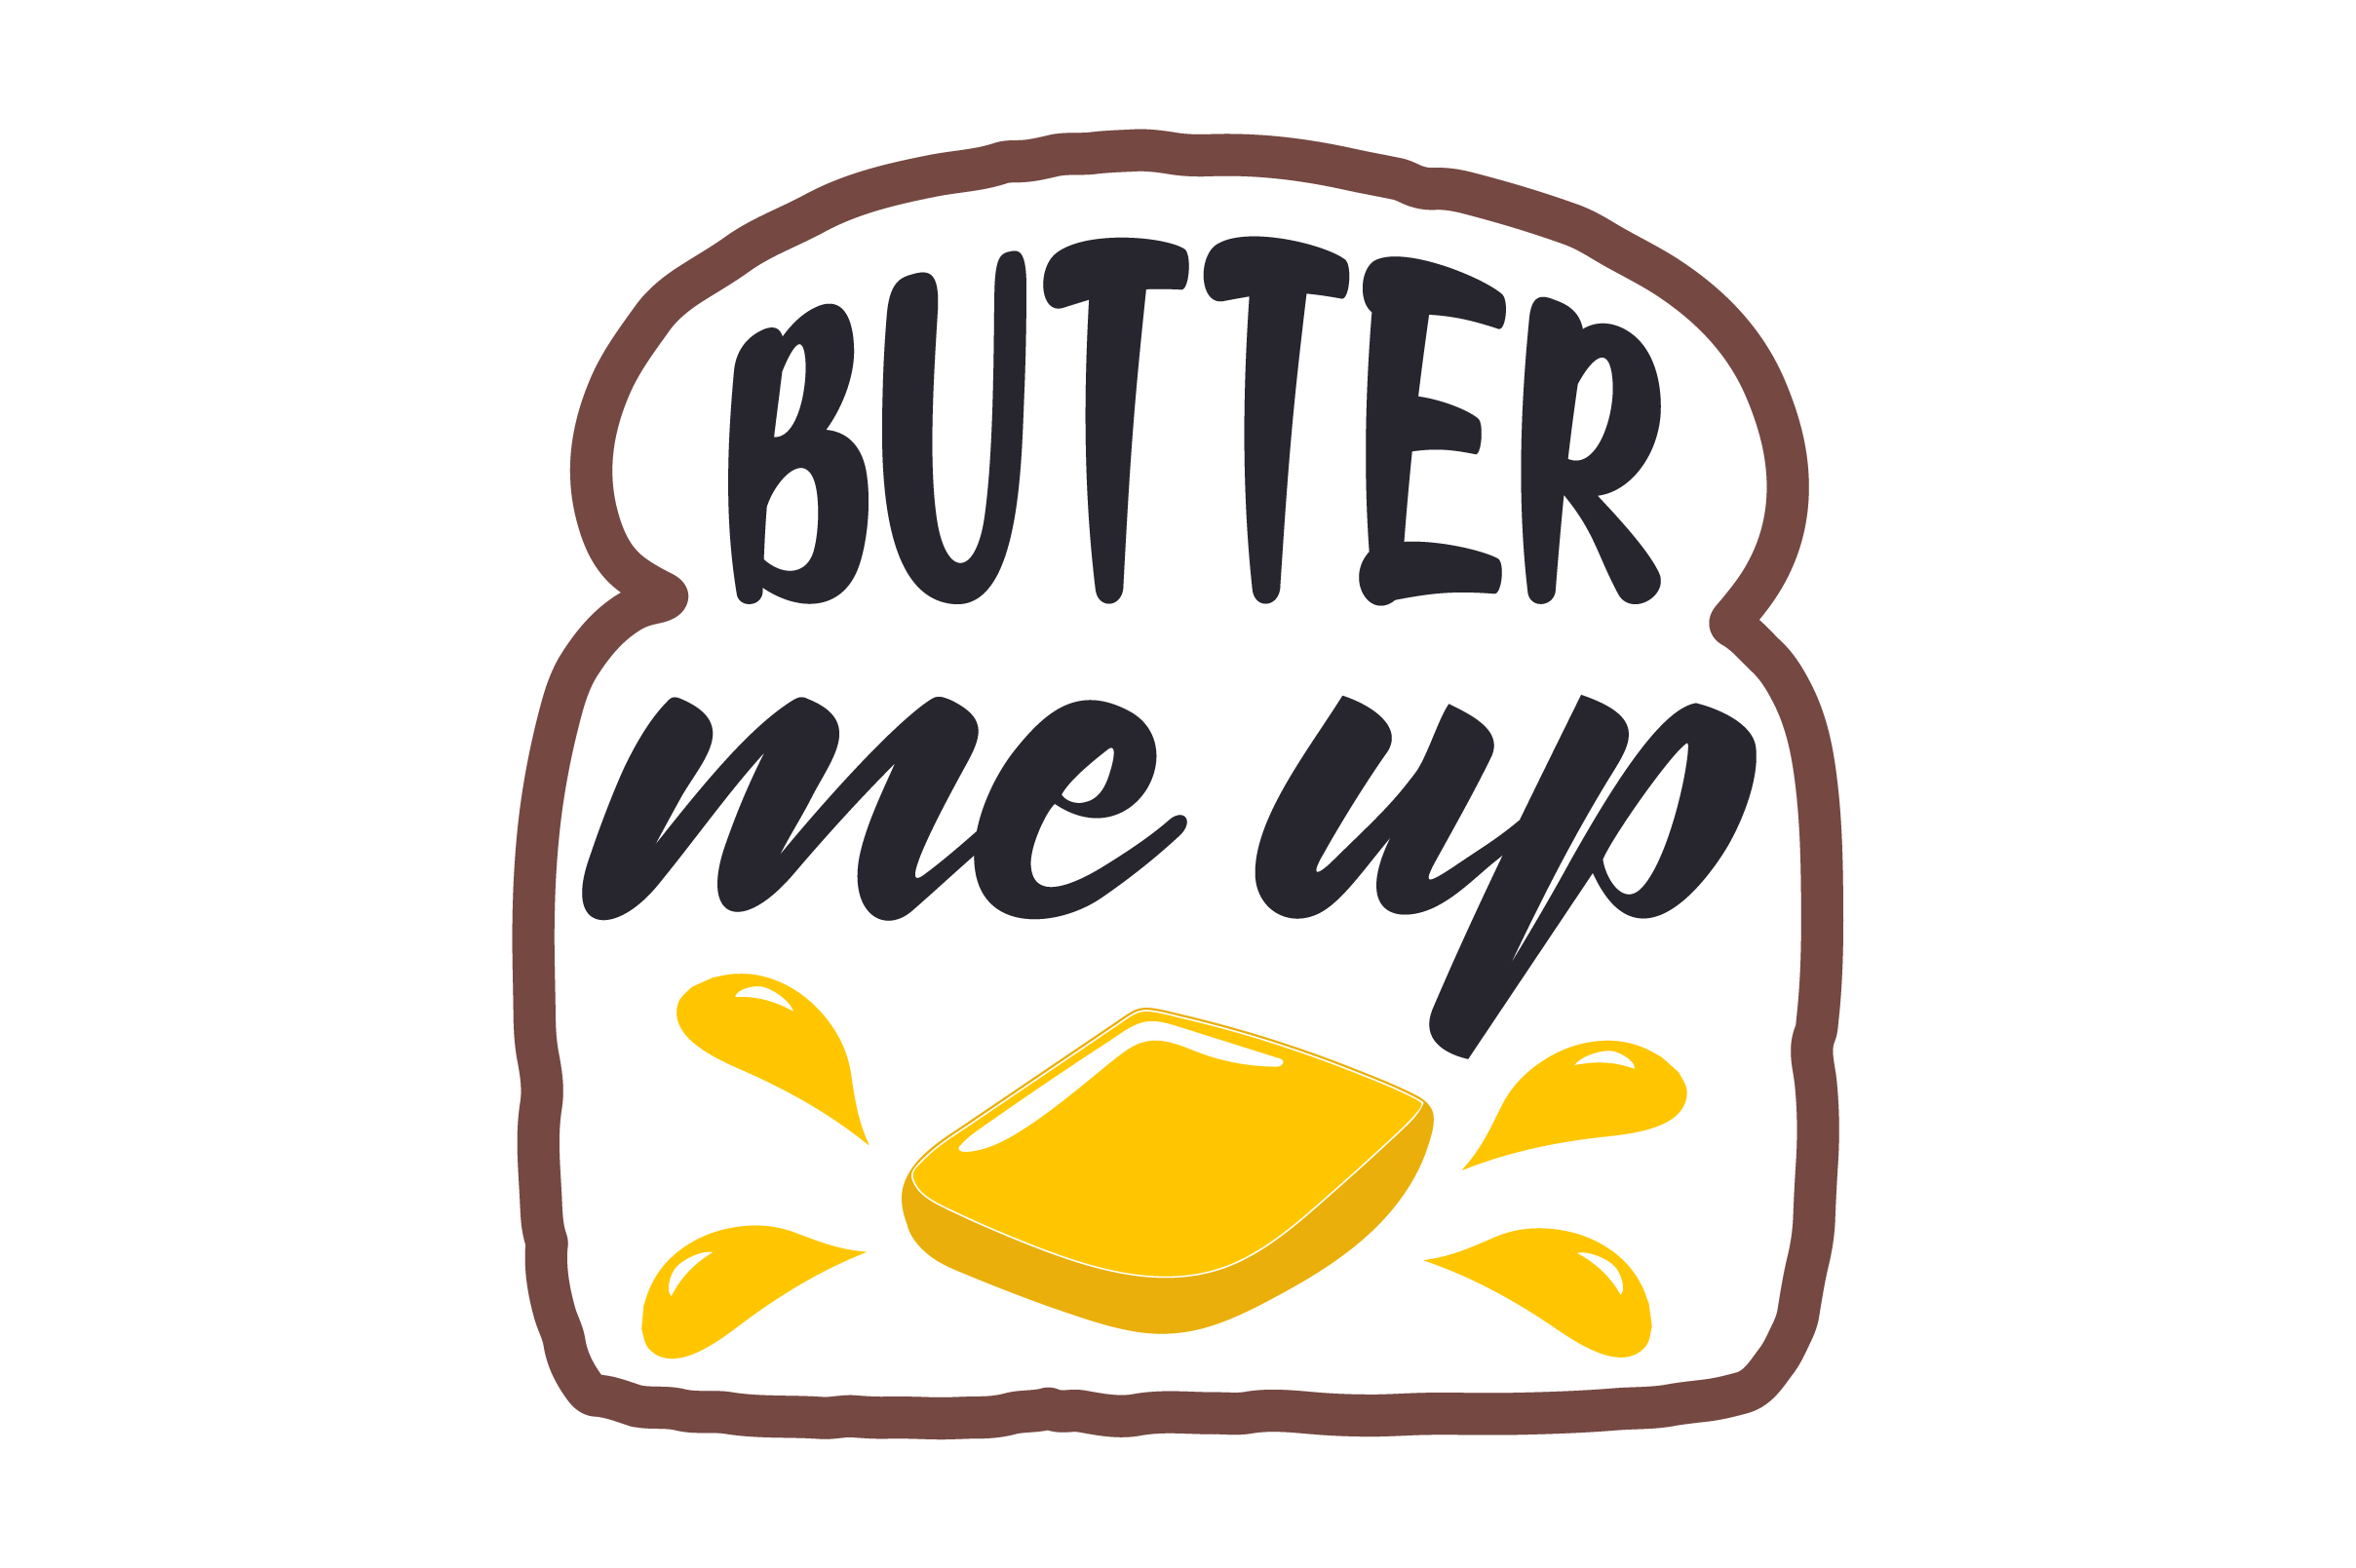 Download Free Butter Me Up Svg Cut File By Creative Fabrica Crafts Creative for Cricut Explore, Silhouette and other cutting machines.